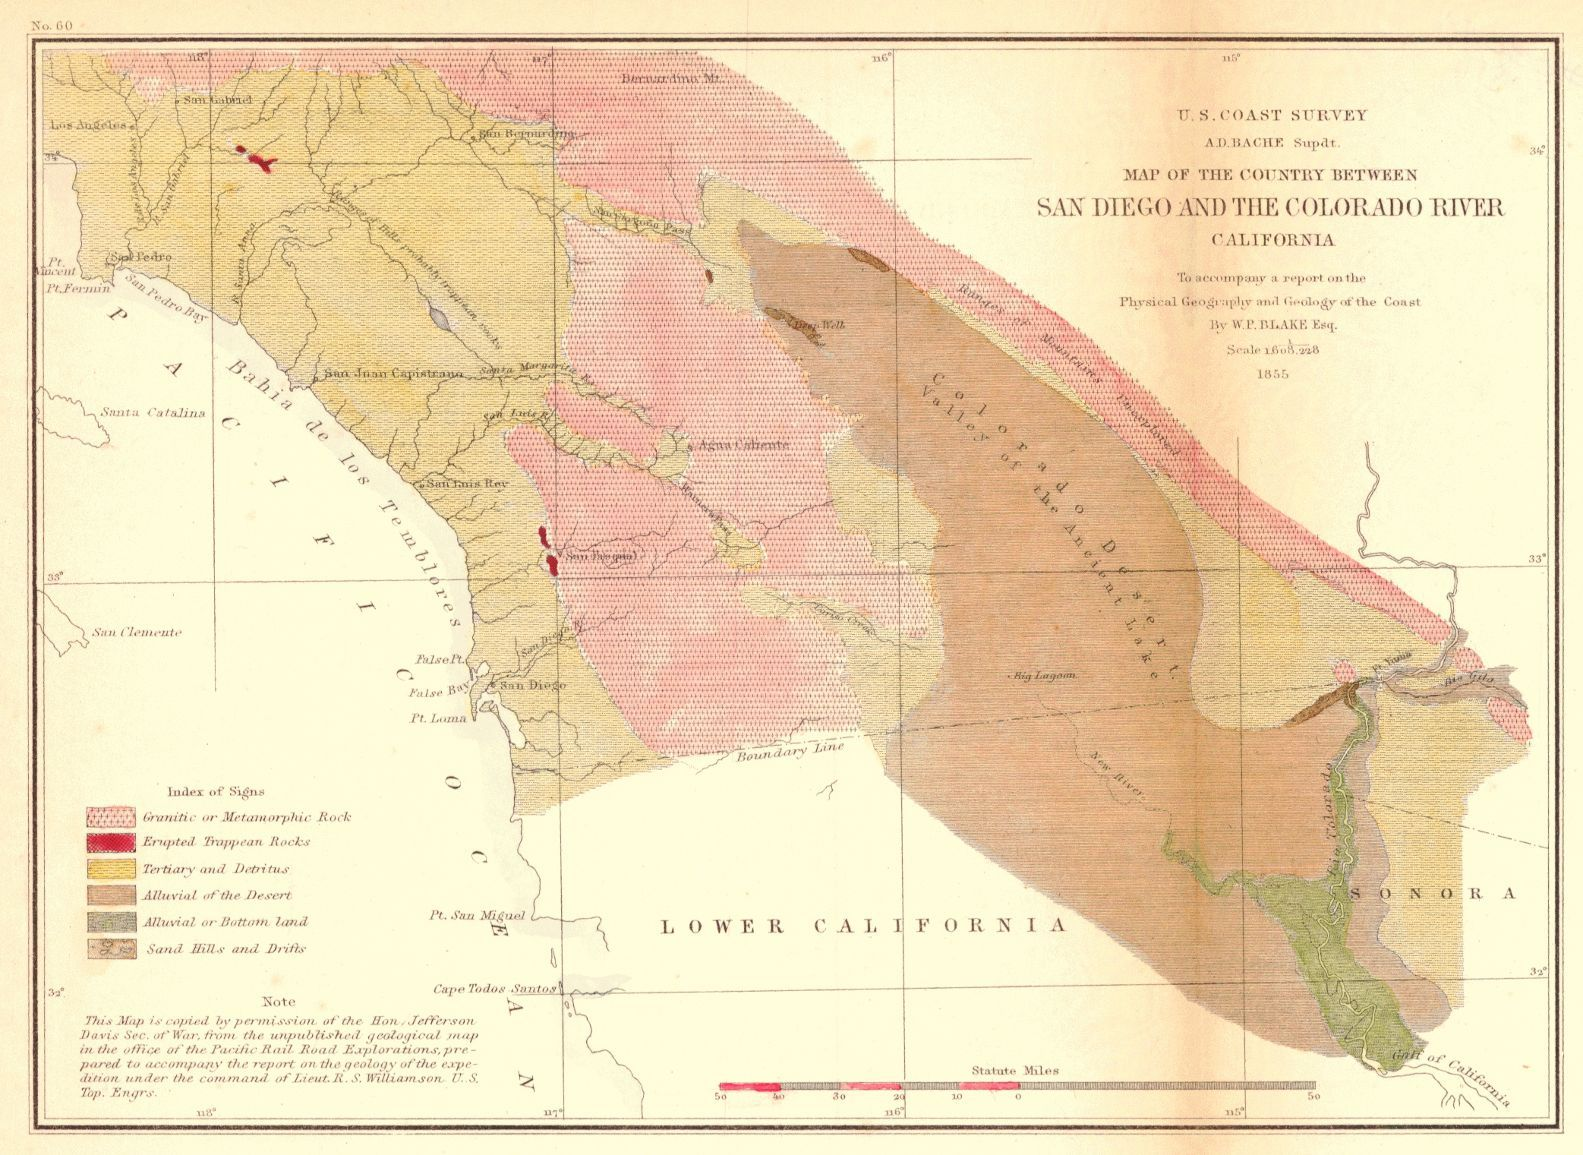 Map Of The Country Between San Diego And The Colorado River California 1855 U S